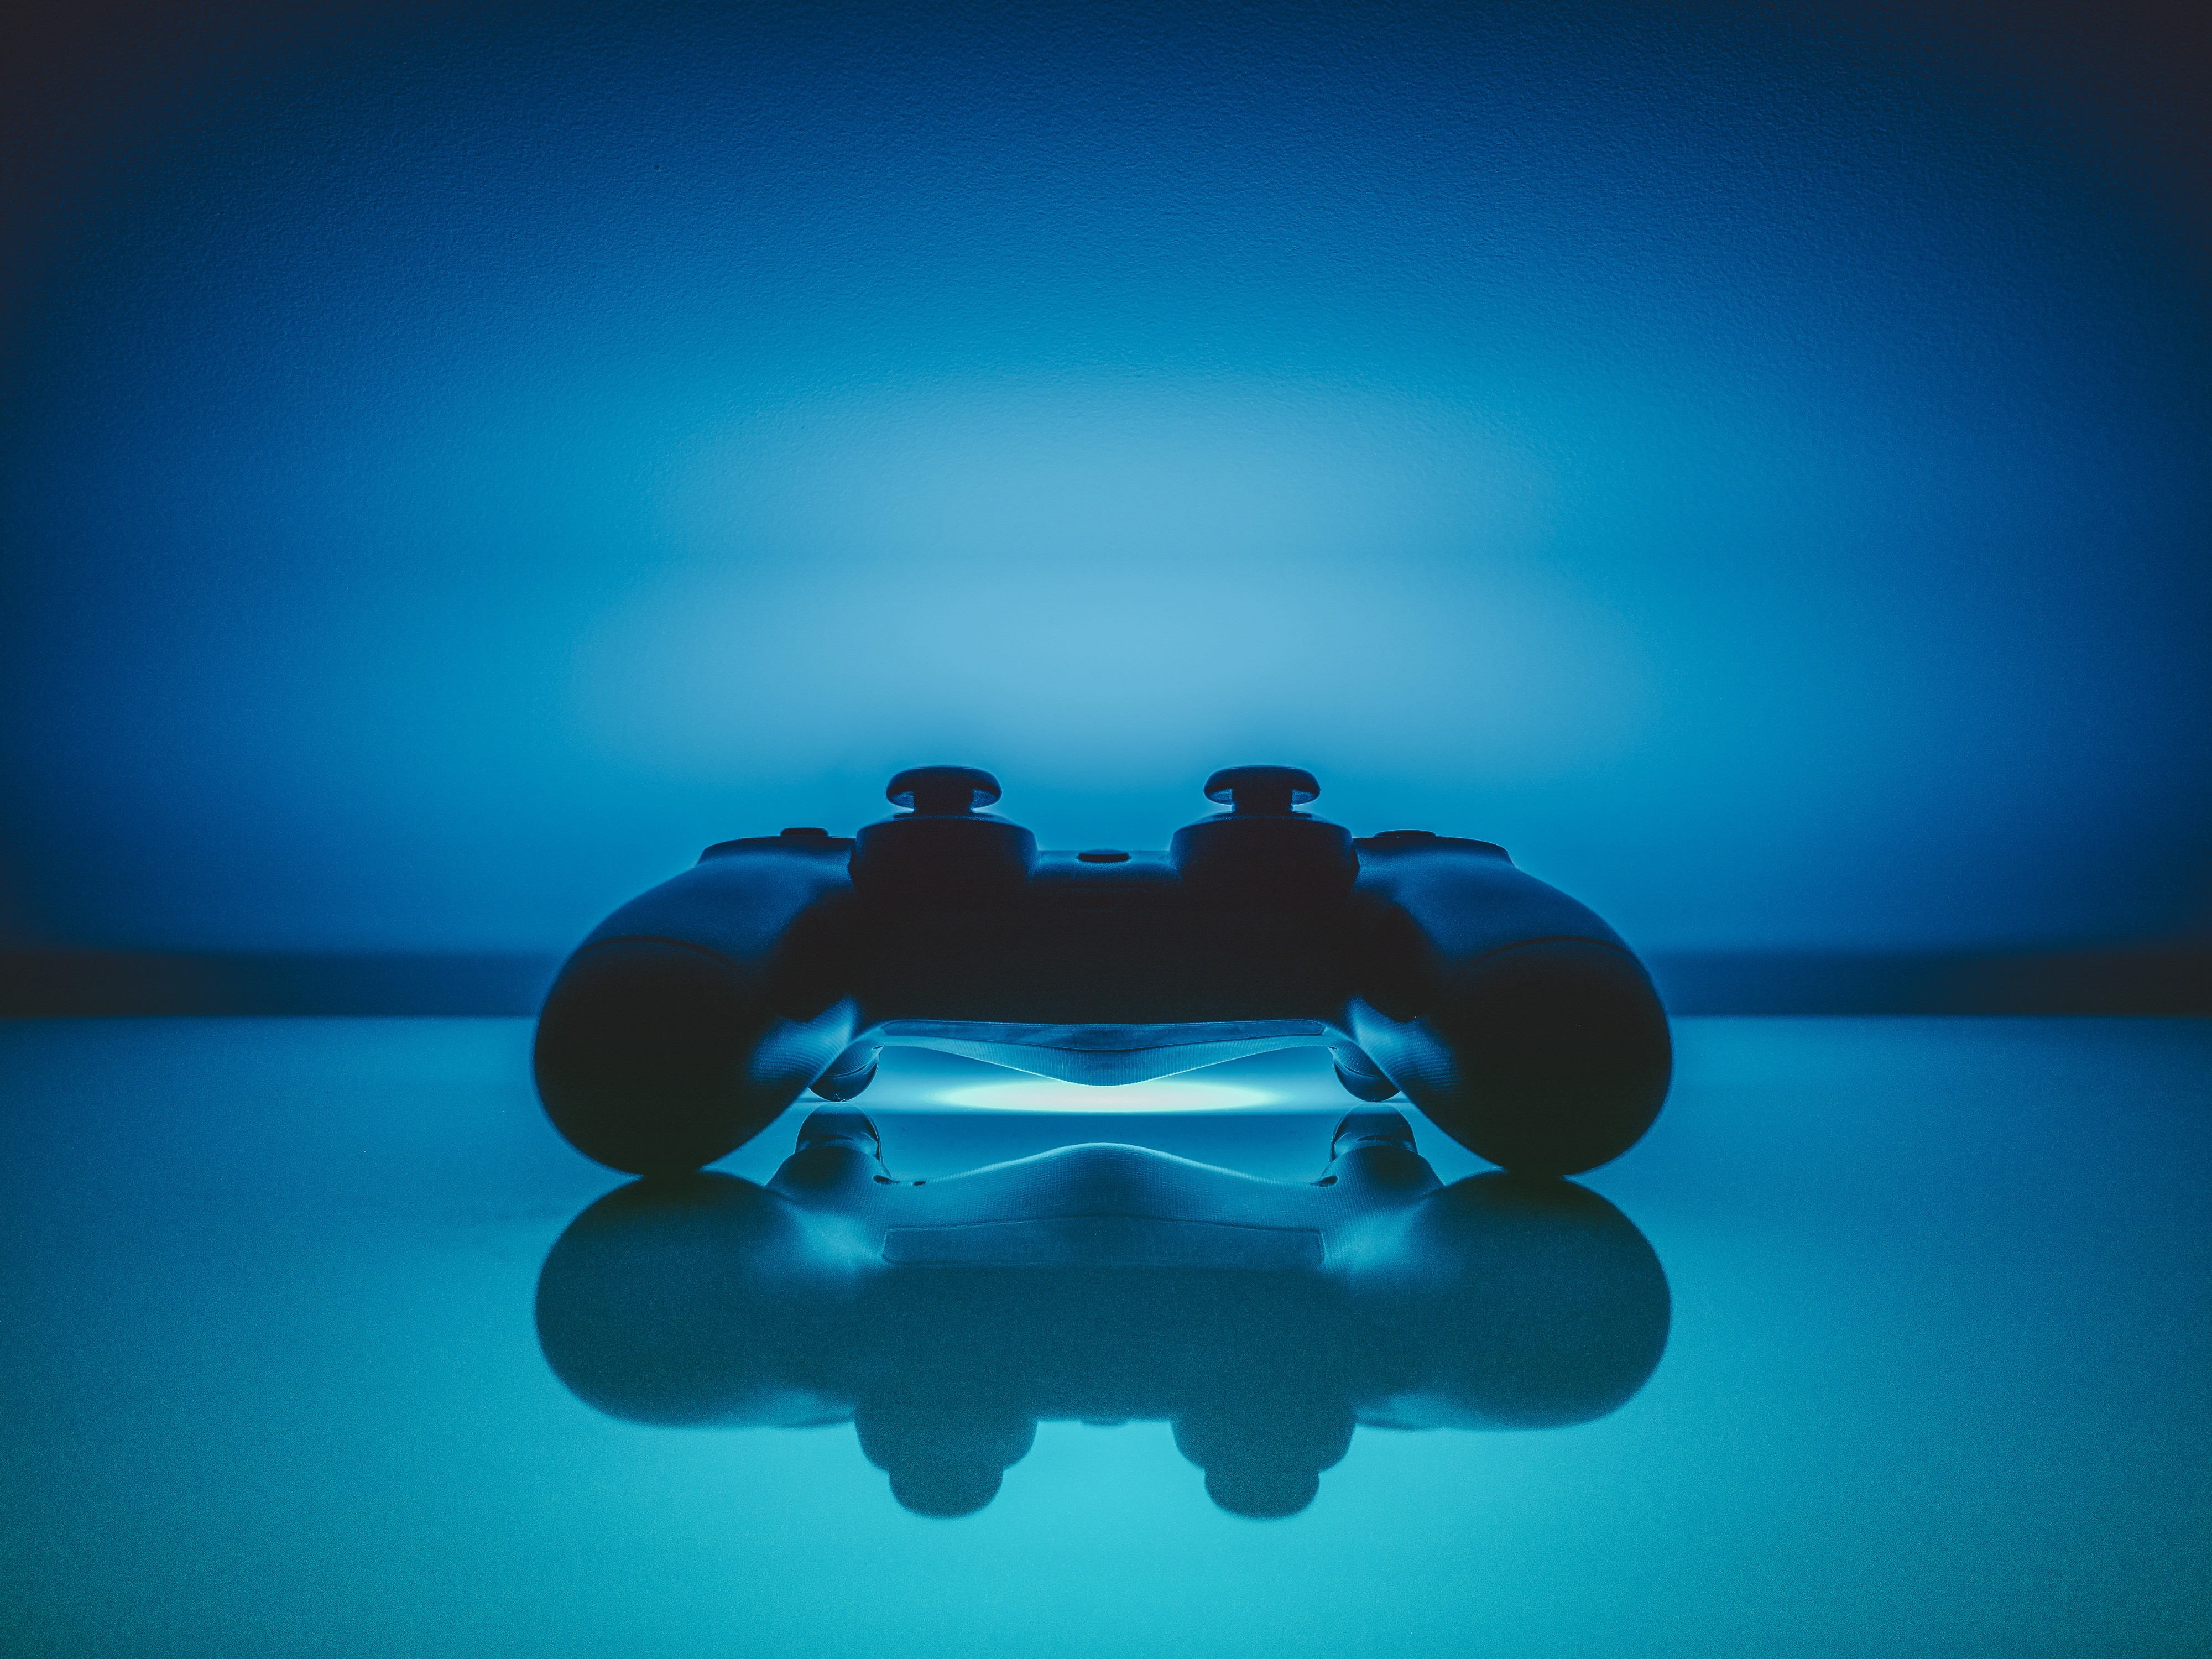 A video gaming controller with an interesting blue background.